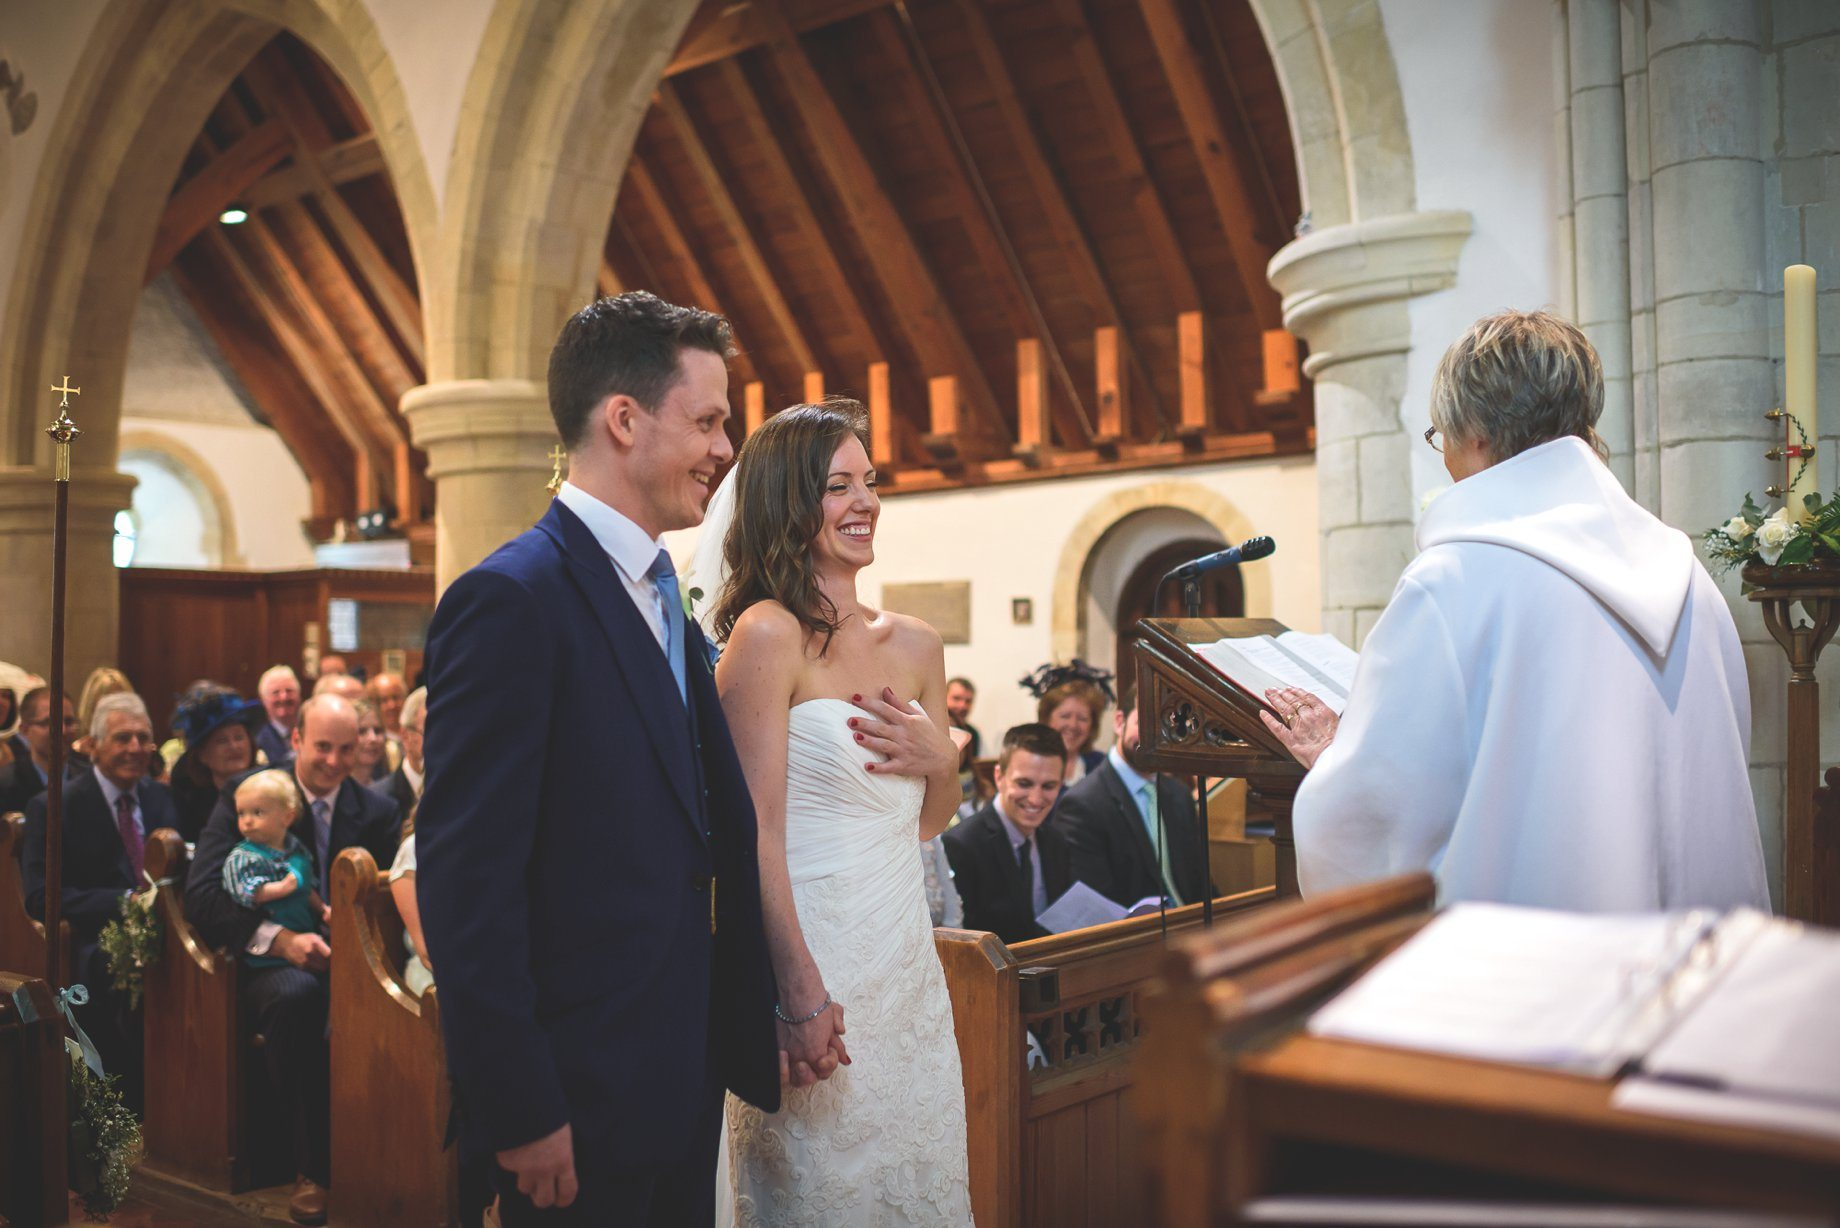 Louisa and Chris - West Sussex wedding photography (59 of 160)